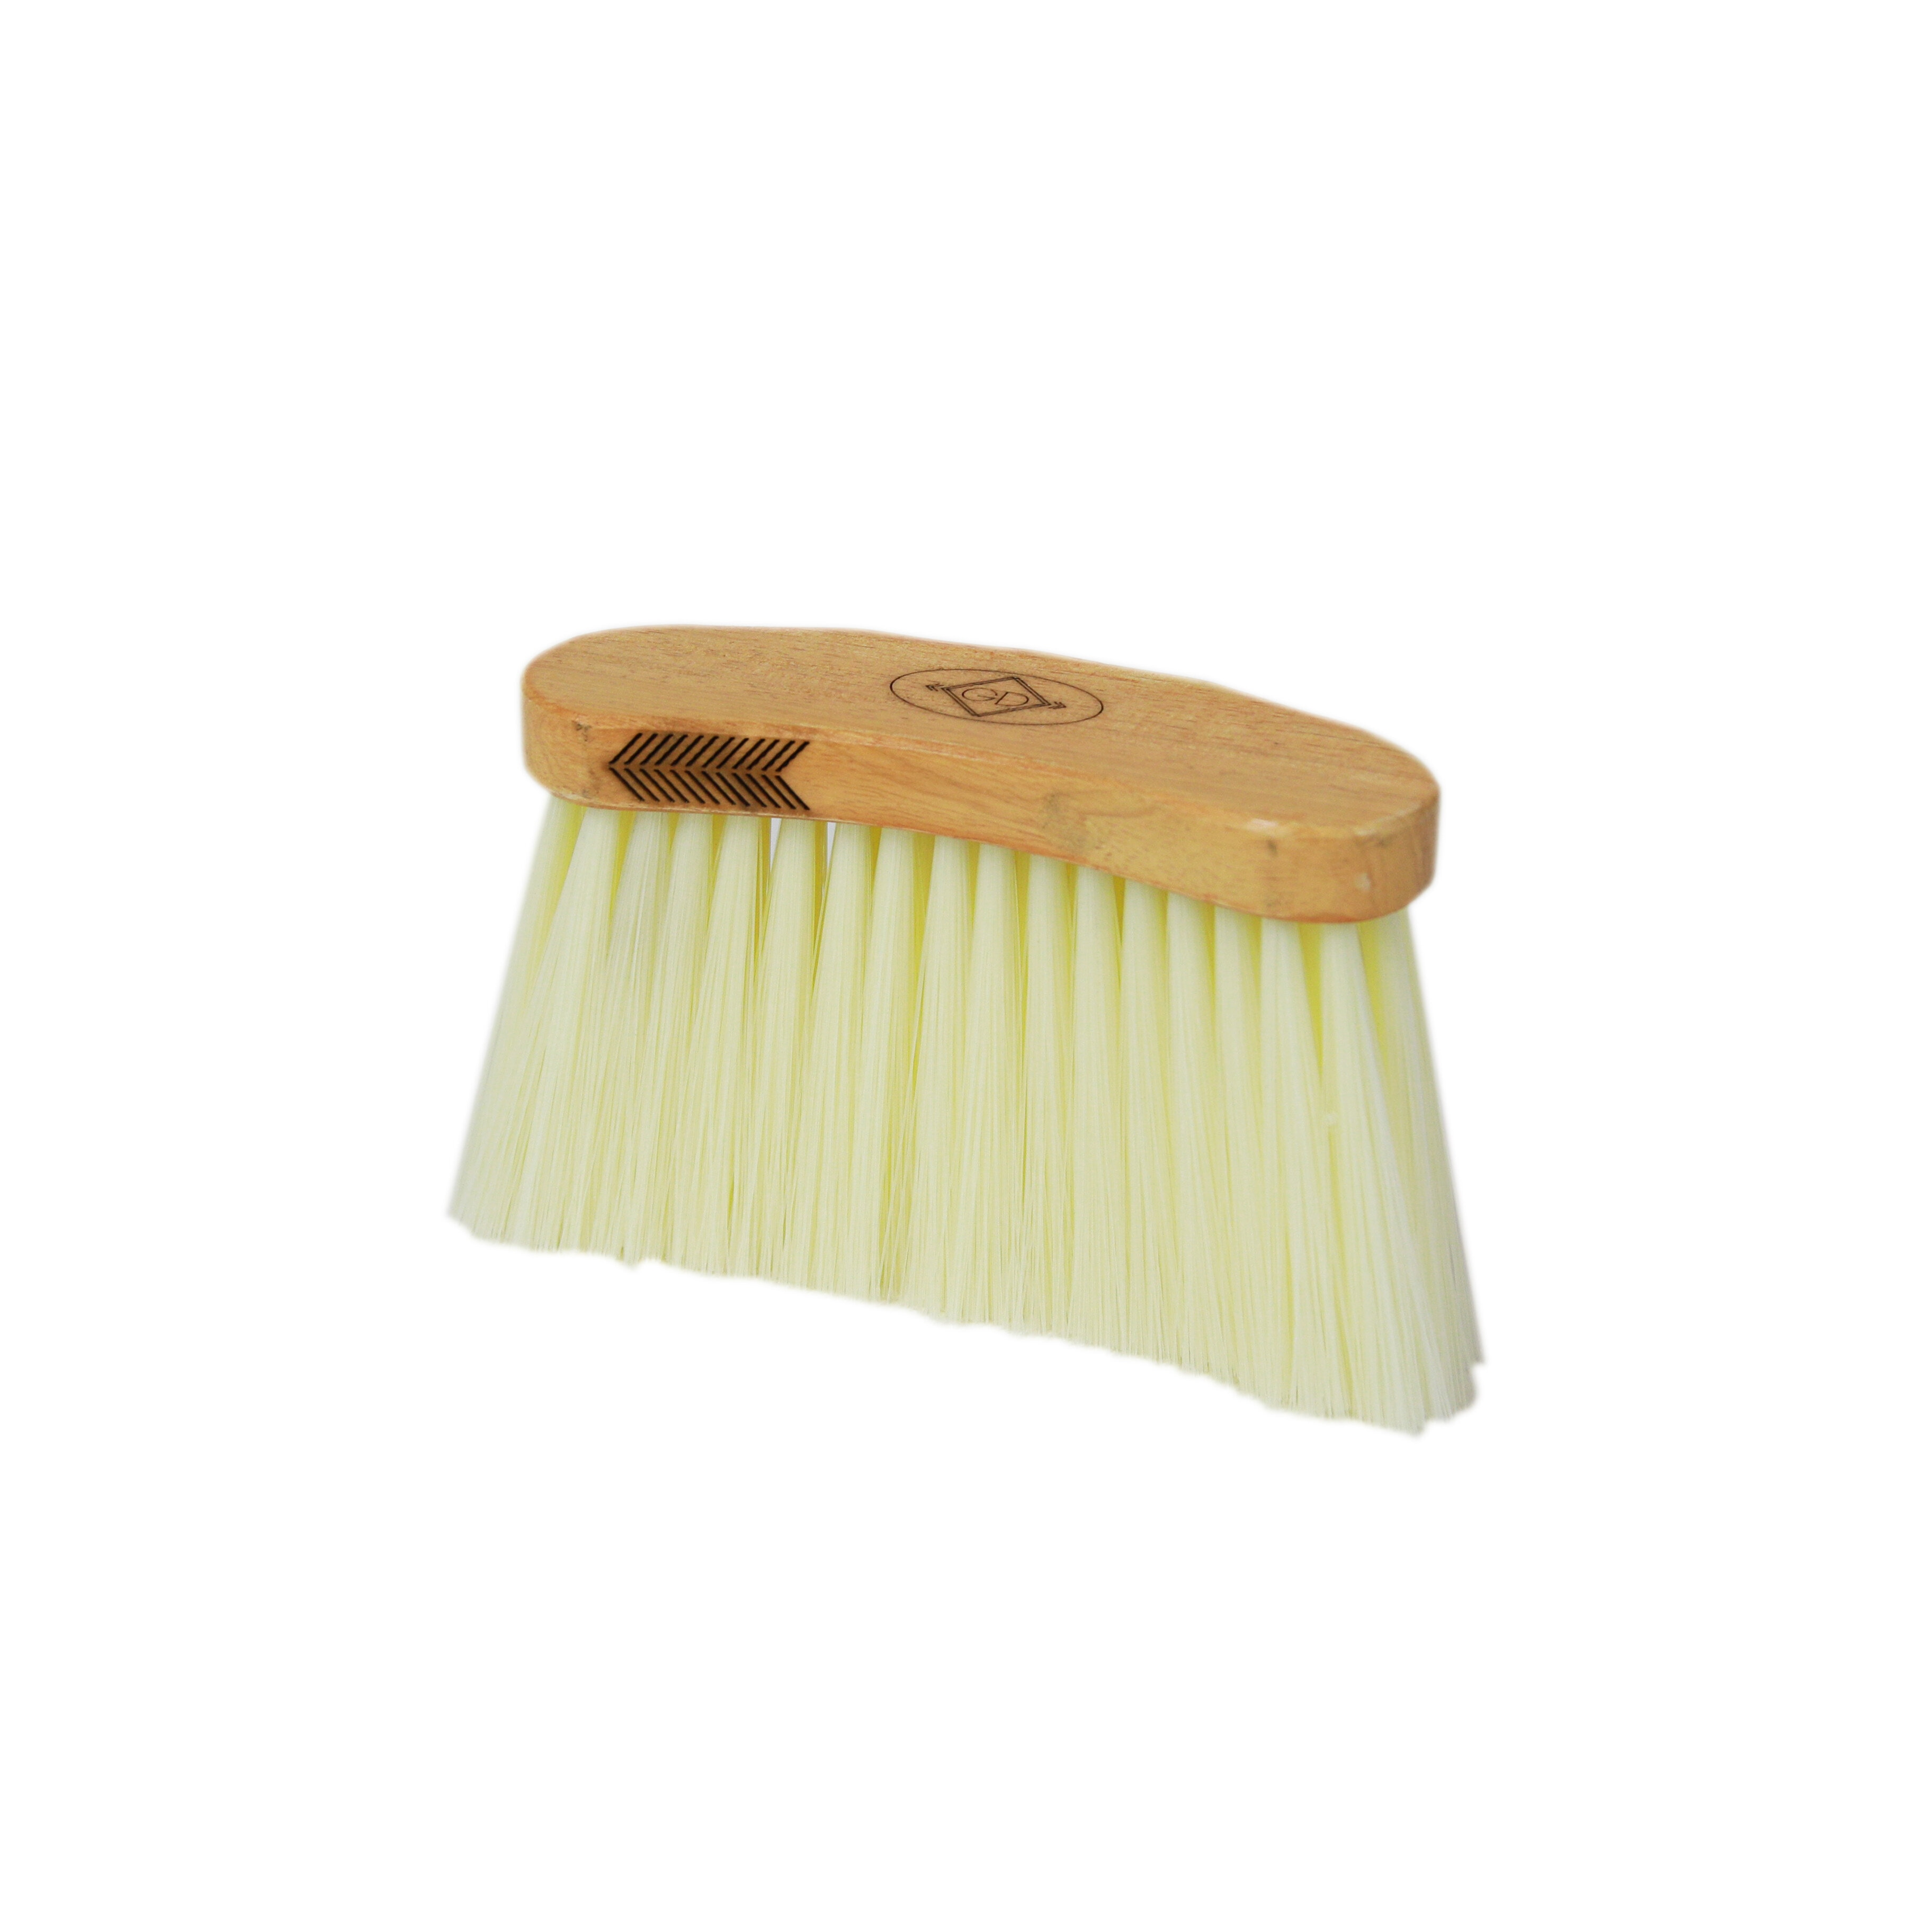 Middle Brush Long - Natural